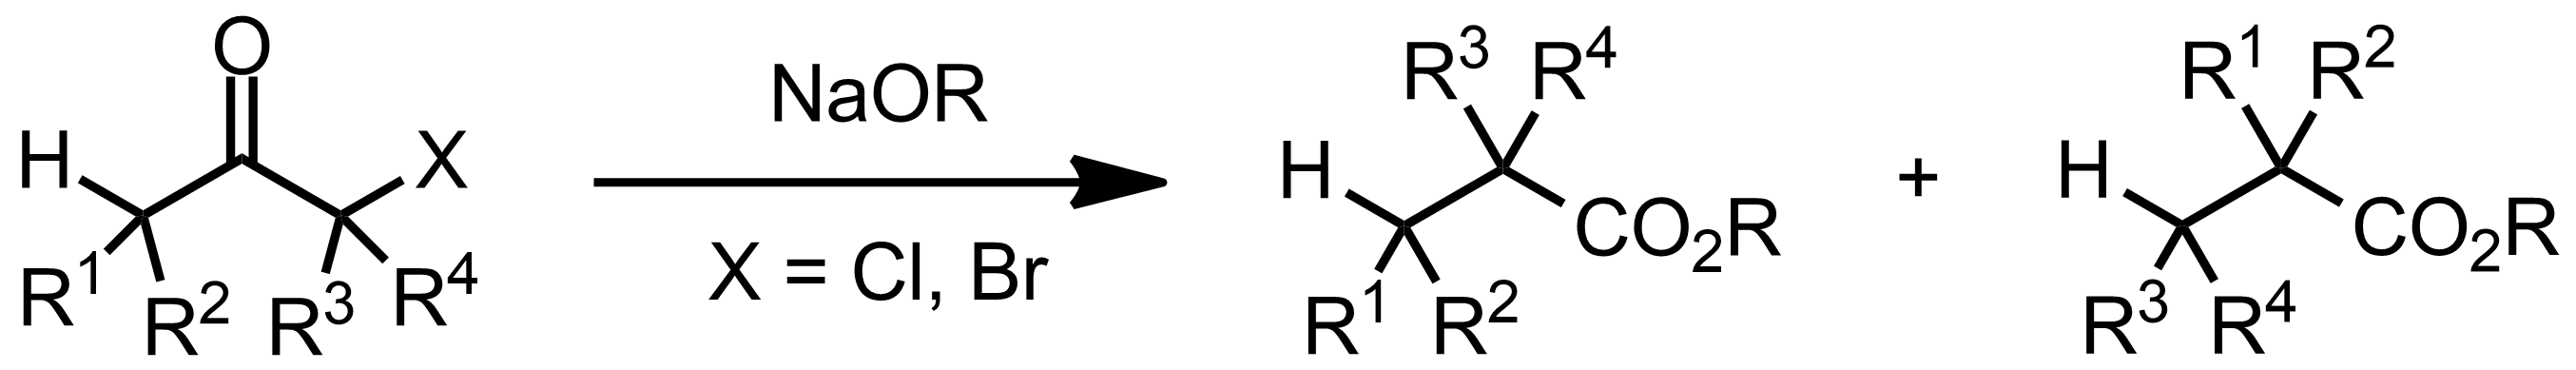 Schematic representation of the Favorskii Rearrangement.